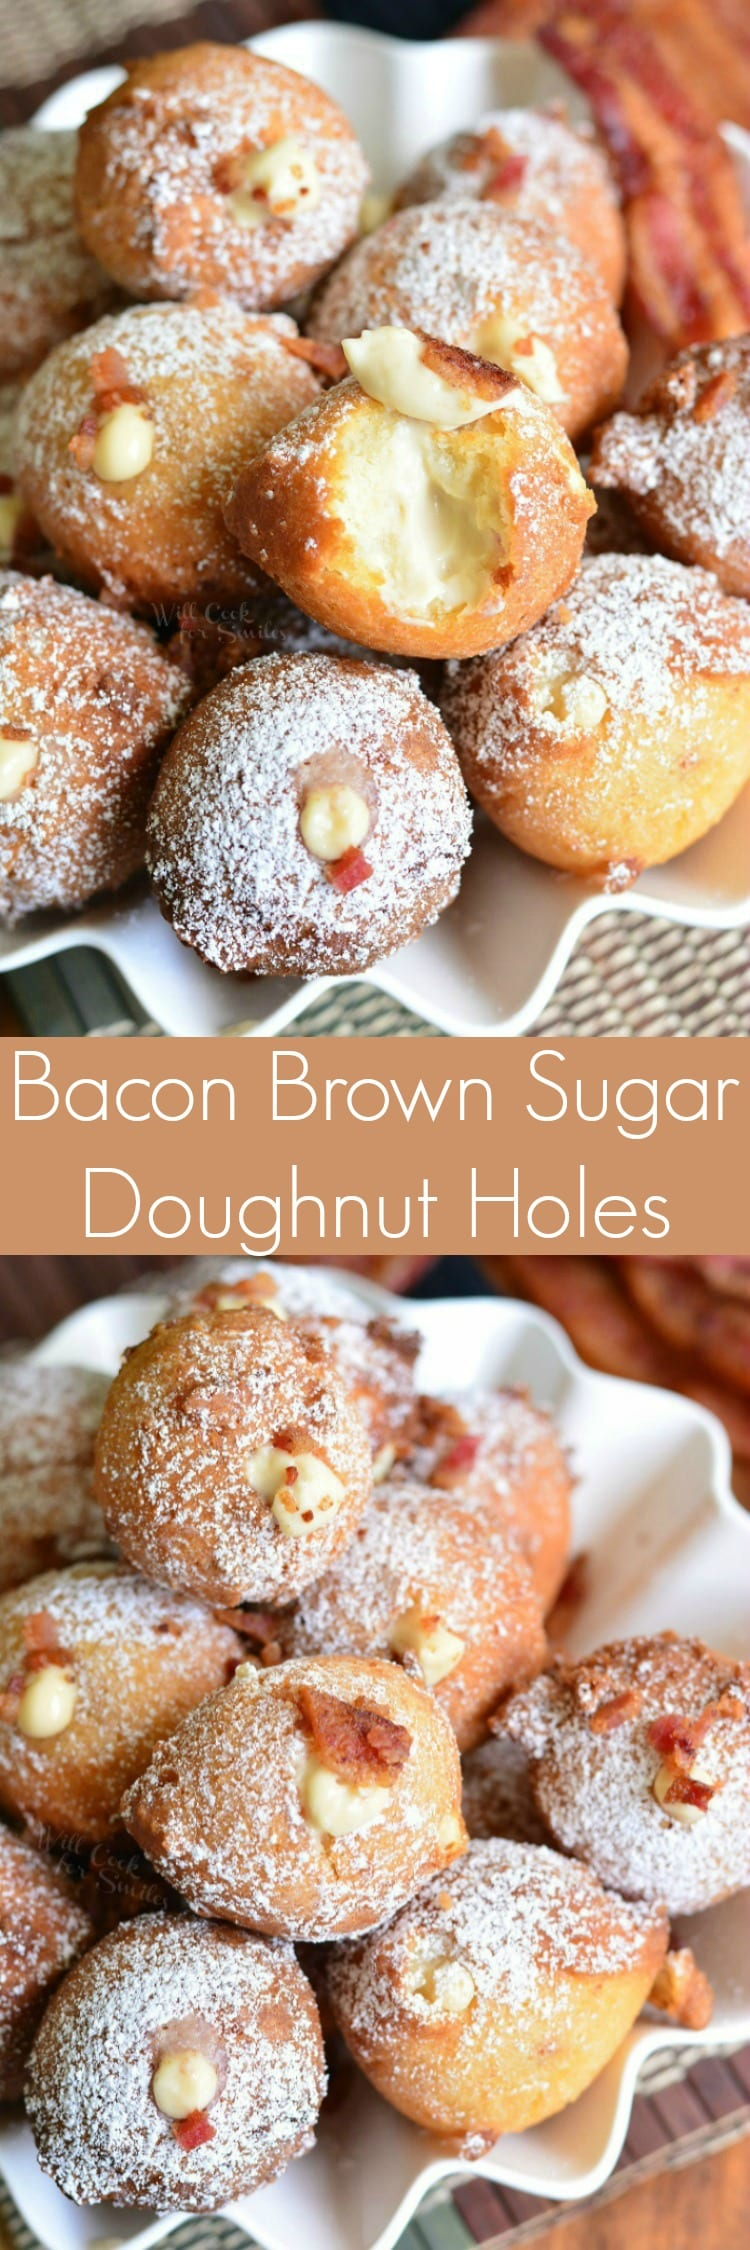 Bacon Brown Sugar Cream Doughnut Holes. Soft, fluffy cream doughnut holes that are made with bacon and brown sugar, filled with cream cheese filling, and coated in powdered sugar.